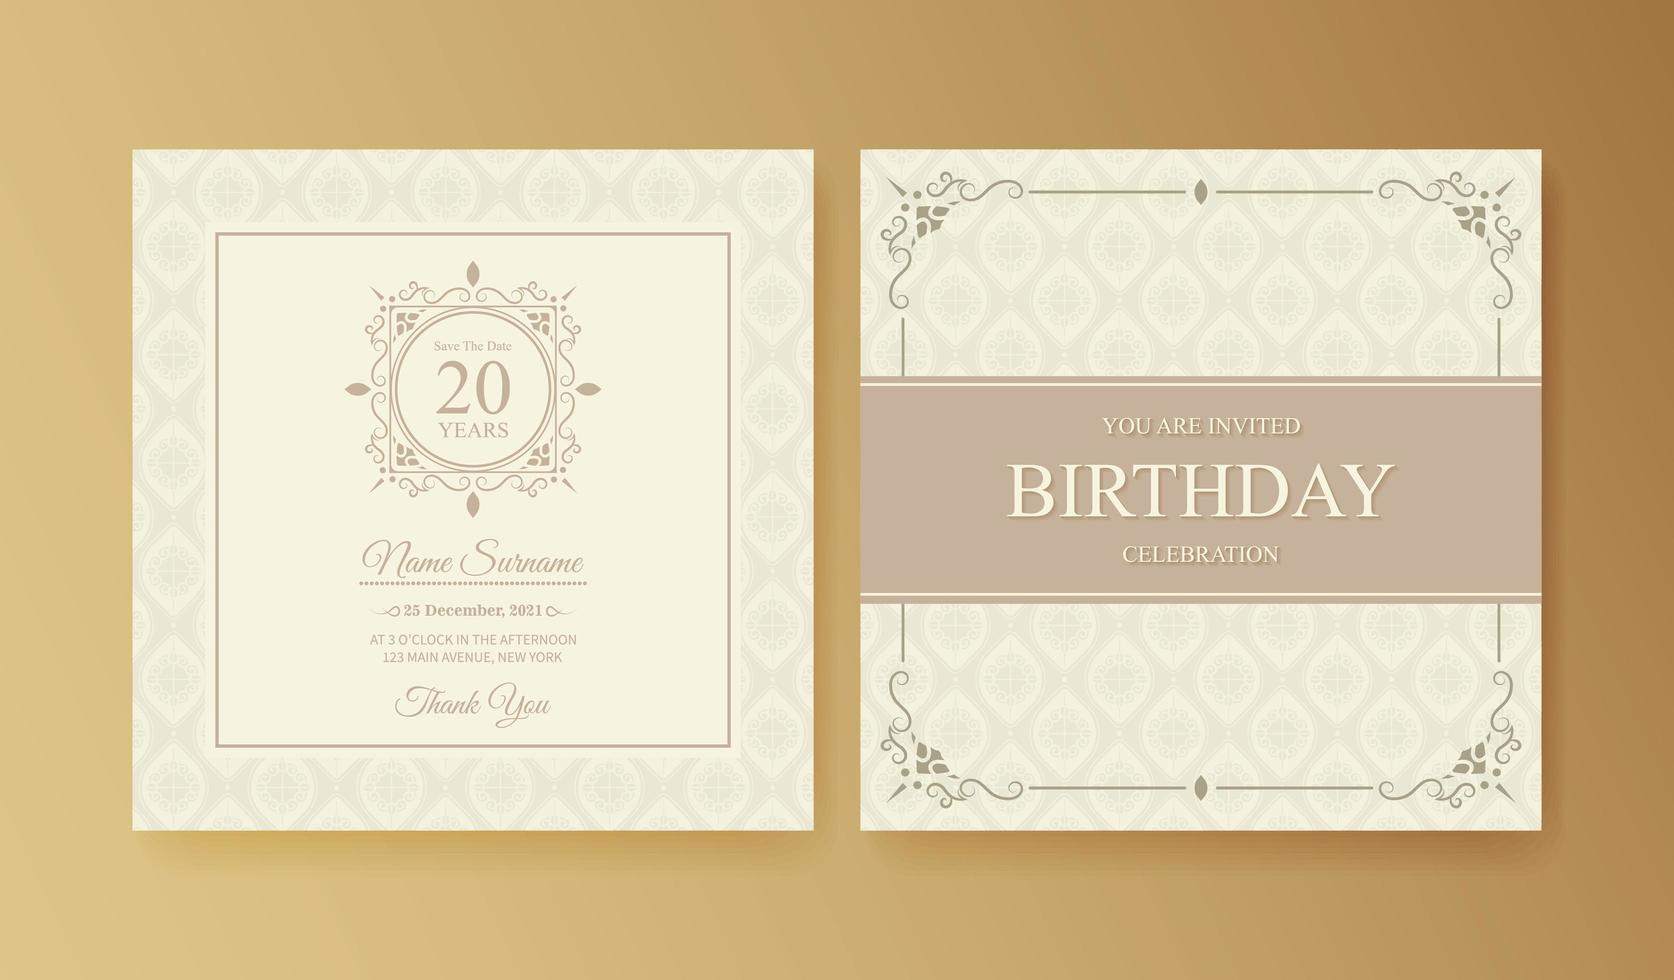 Elegant birthday invitation template - Download Free Vectors